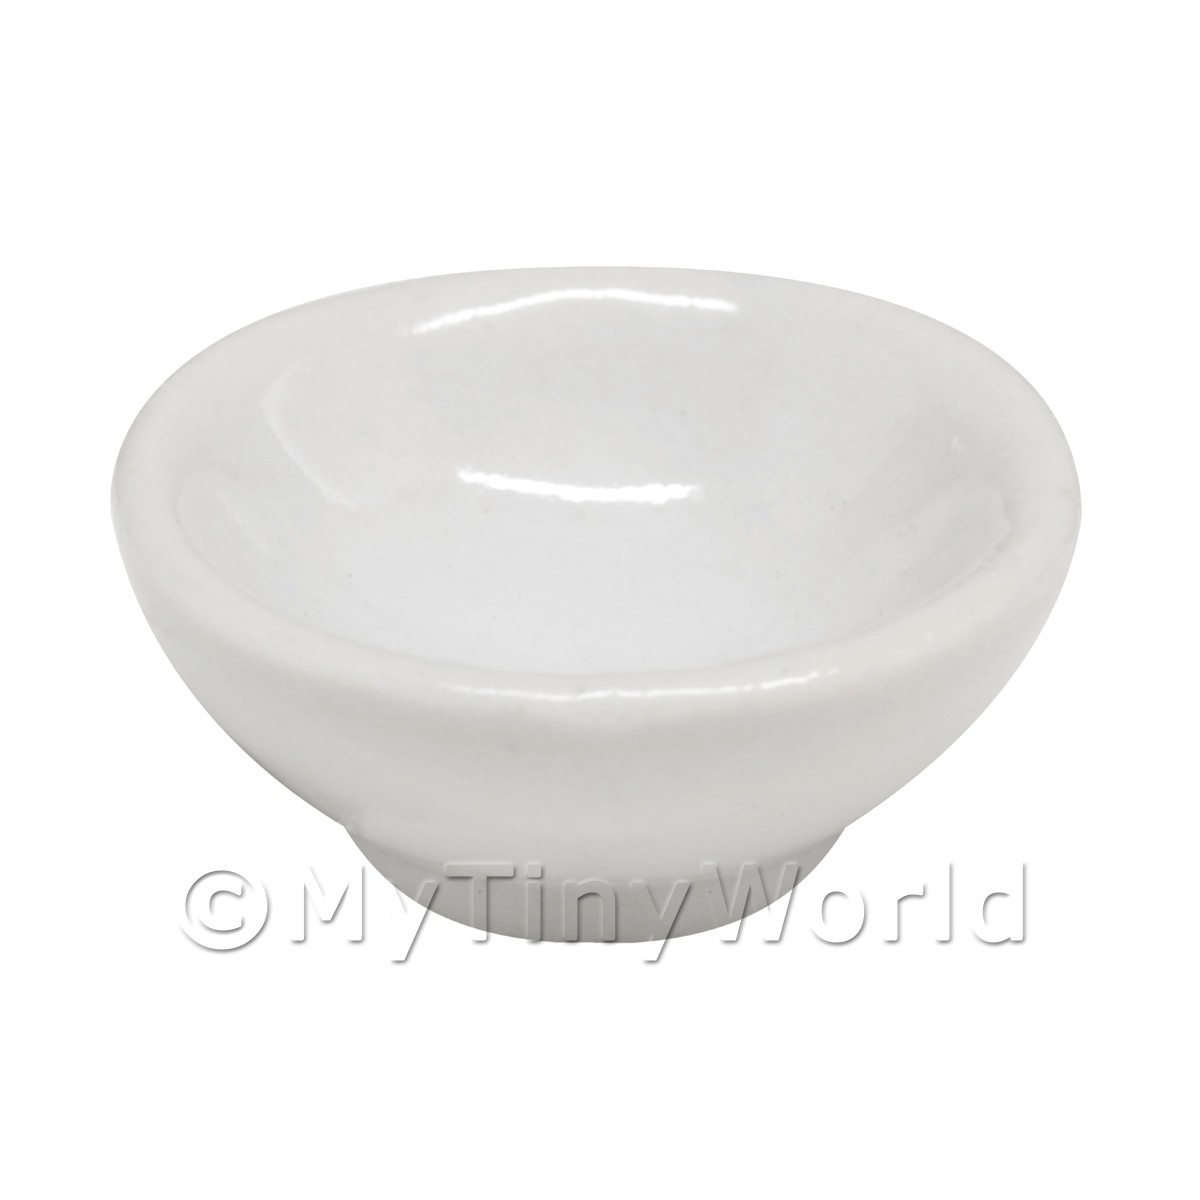 19mm Dolls House Miniature White Glazed Ceramic Bowl